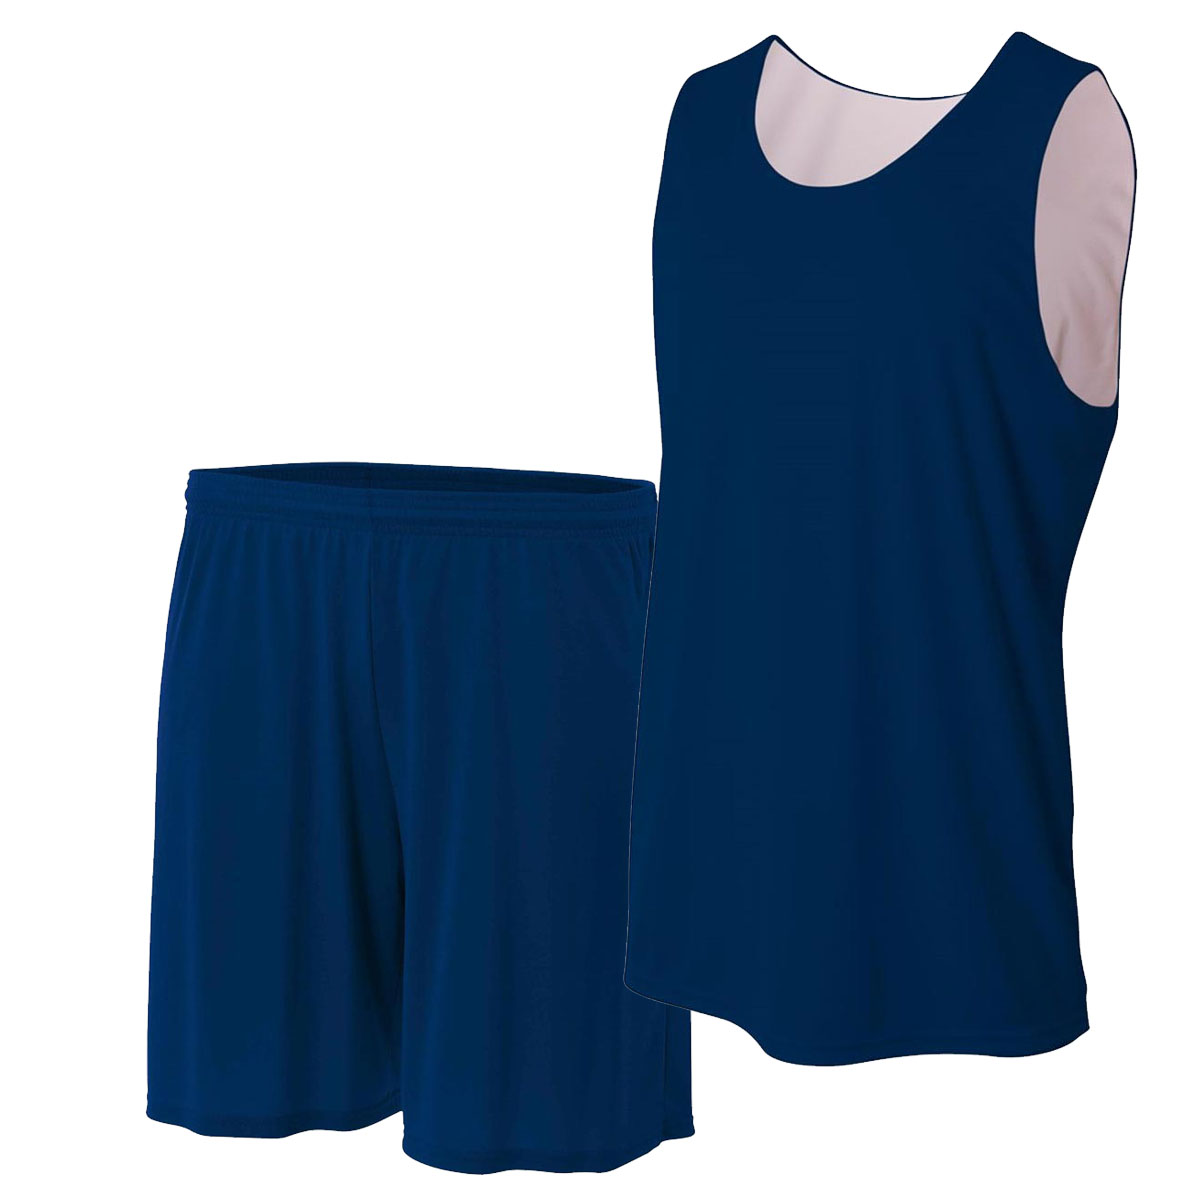 Reversible Basketball Uniforms Manufacturers in Surat